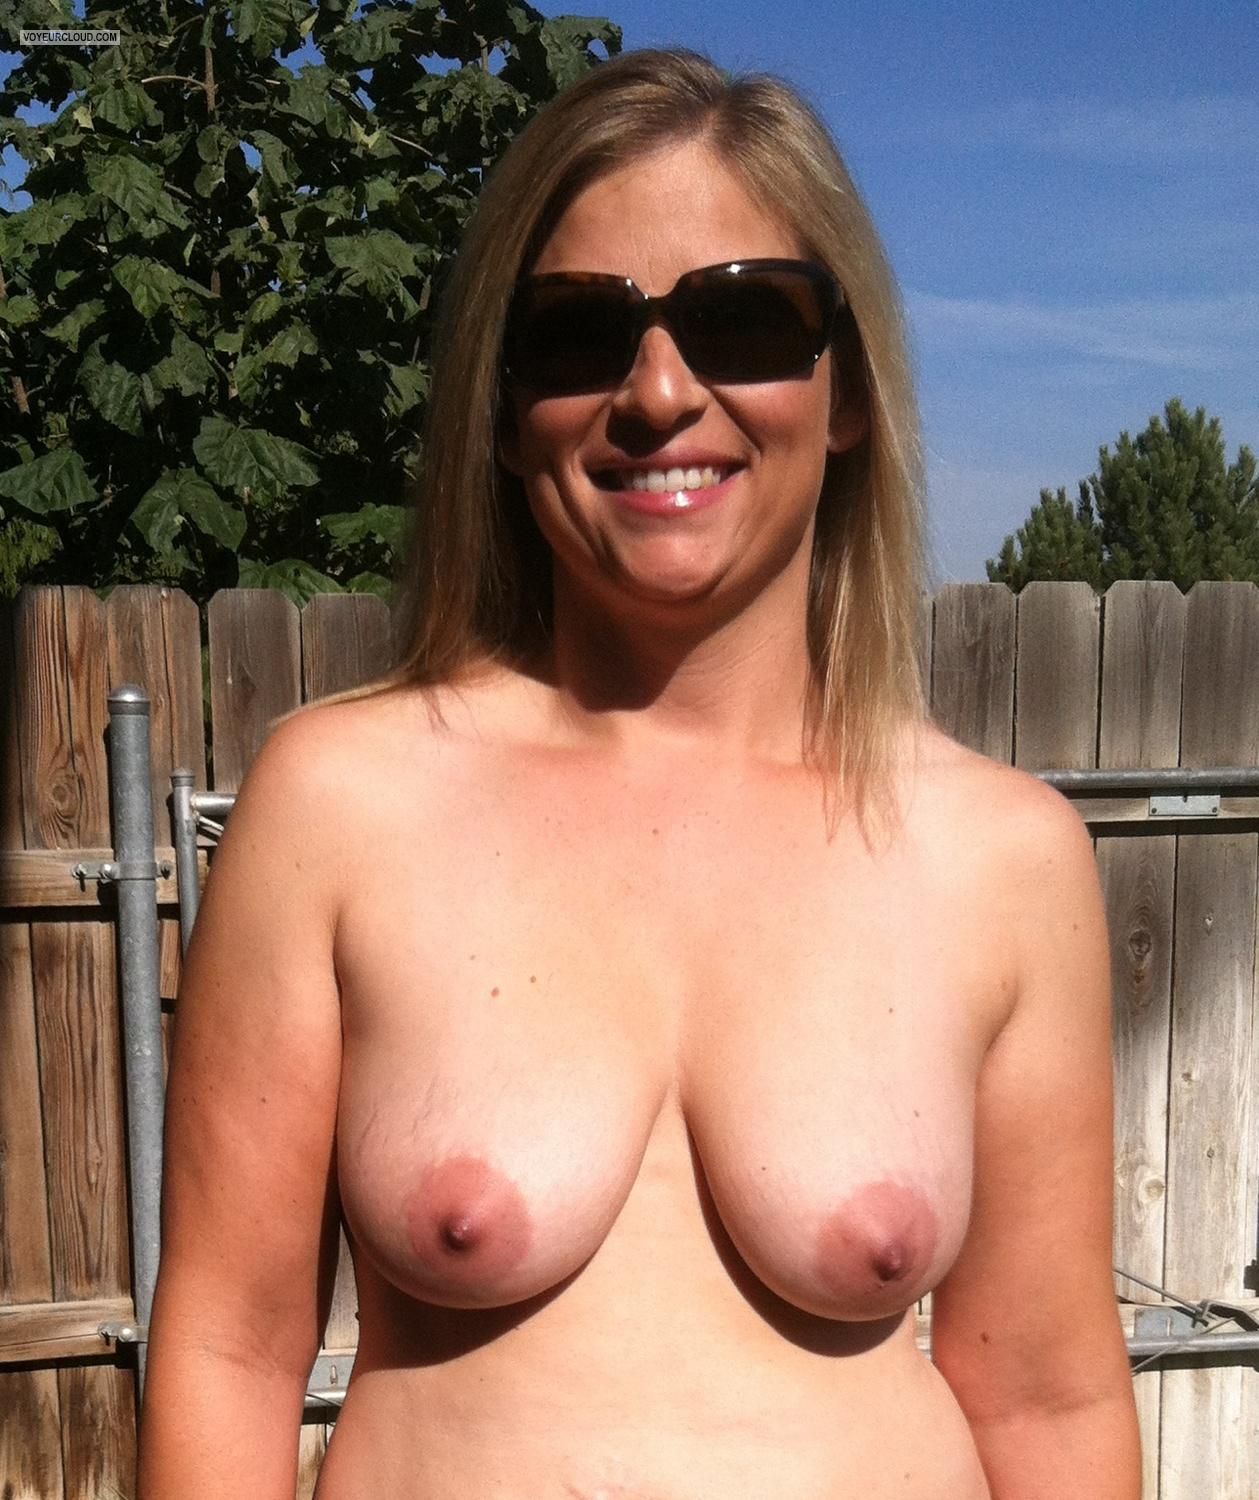 Flashing breasts